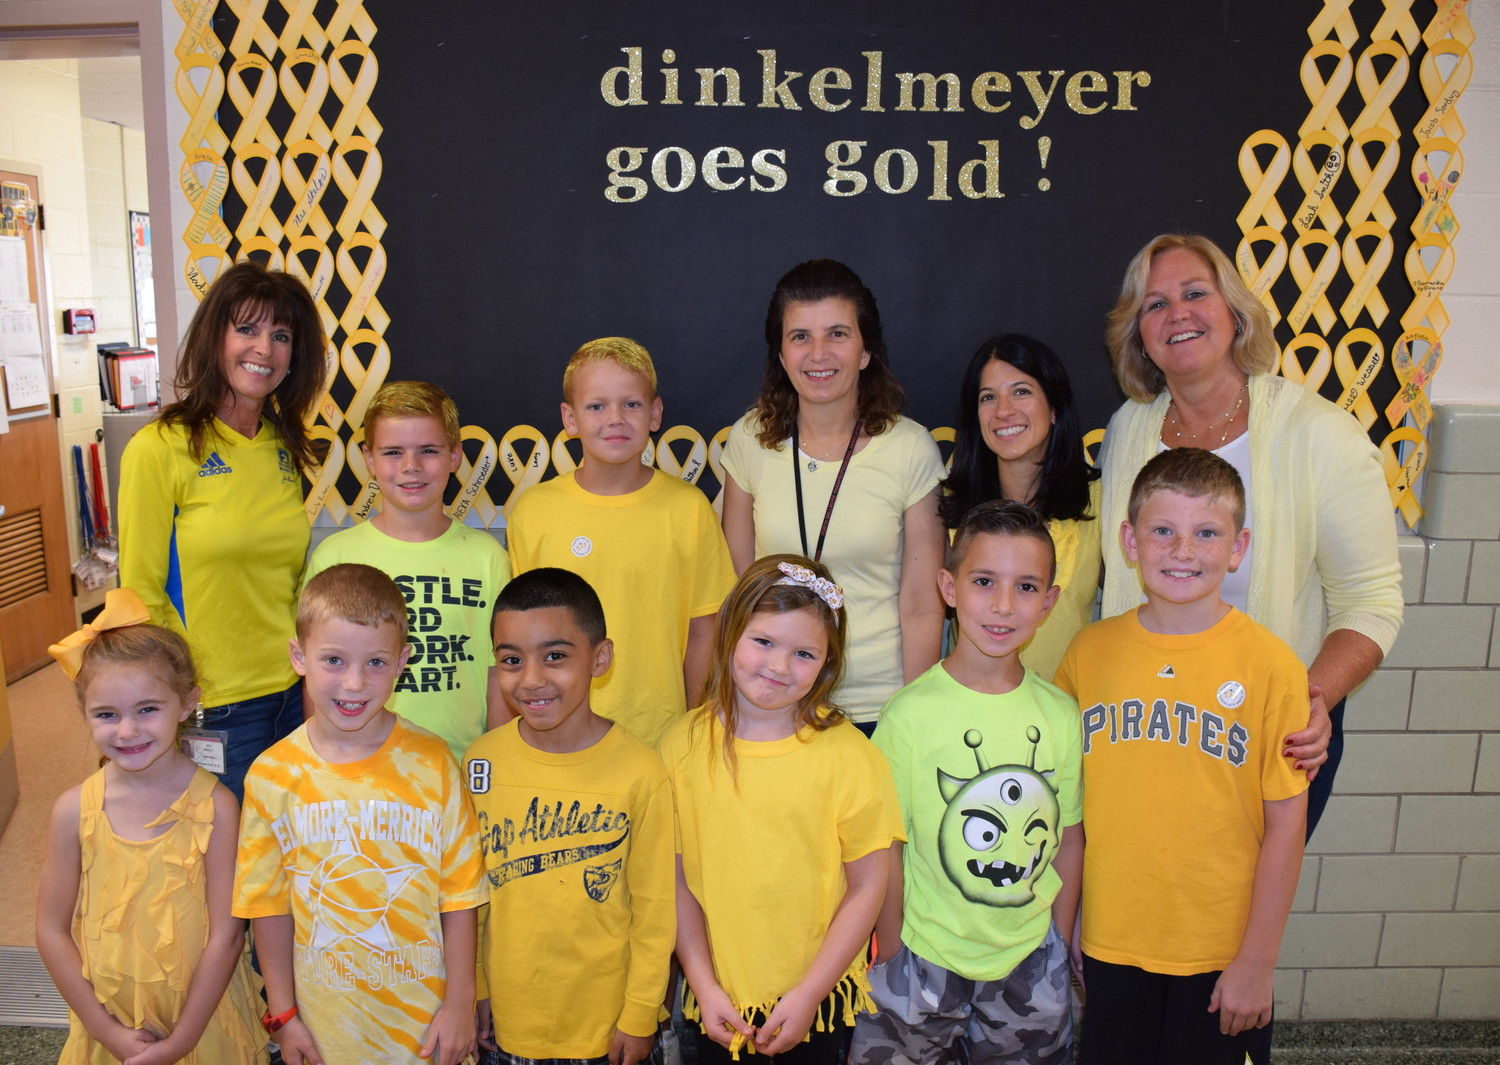 John G. Dinkelmeyer Elementary School Principal Faith Skelos, standing right, was joined by students and teachers who wore gold to school on Sept. 29 in support of childhood cancer awareness.